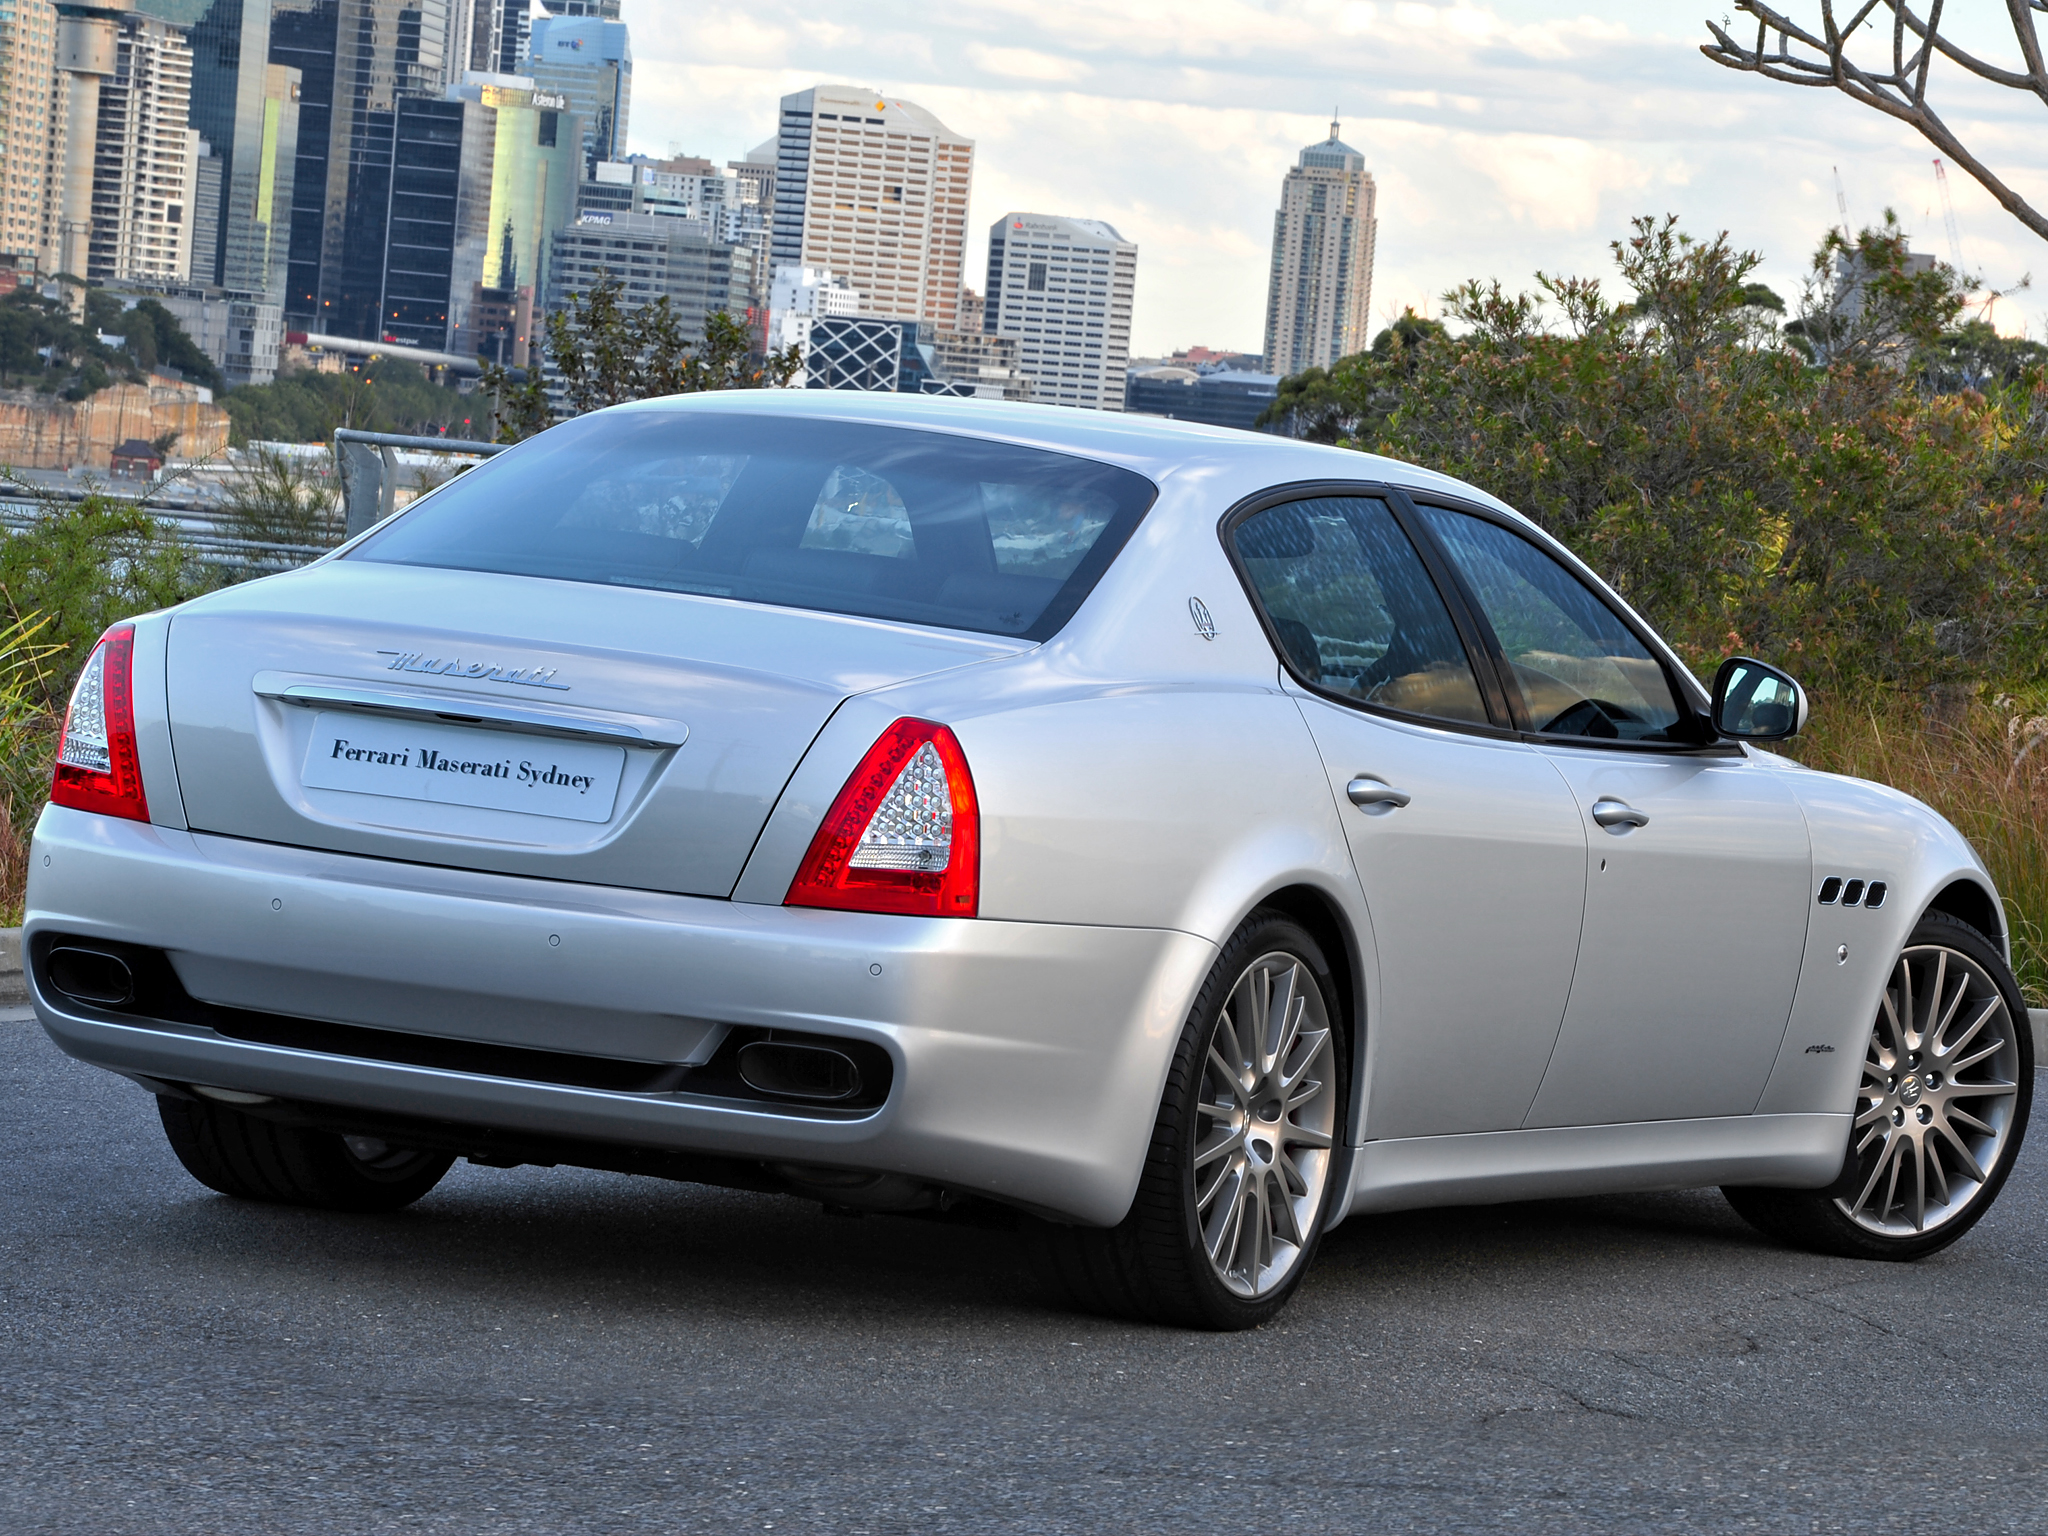 Maserati Quattroporte photo 94955